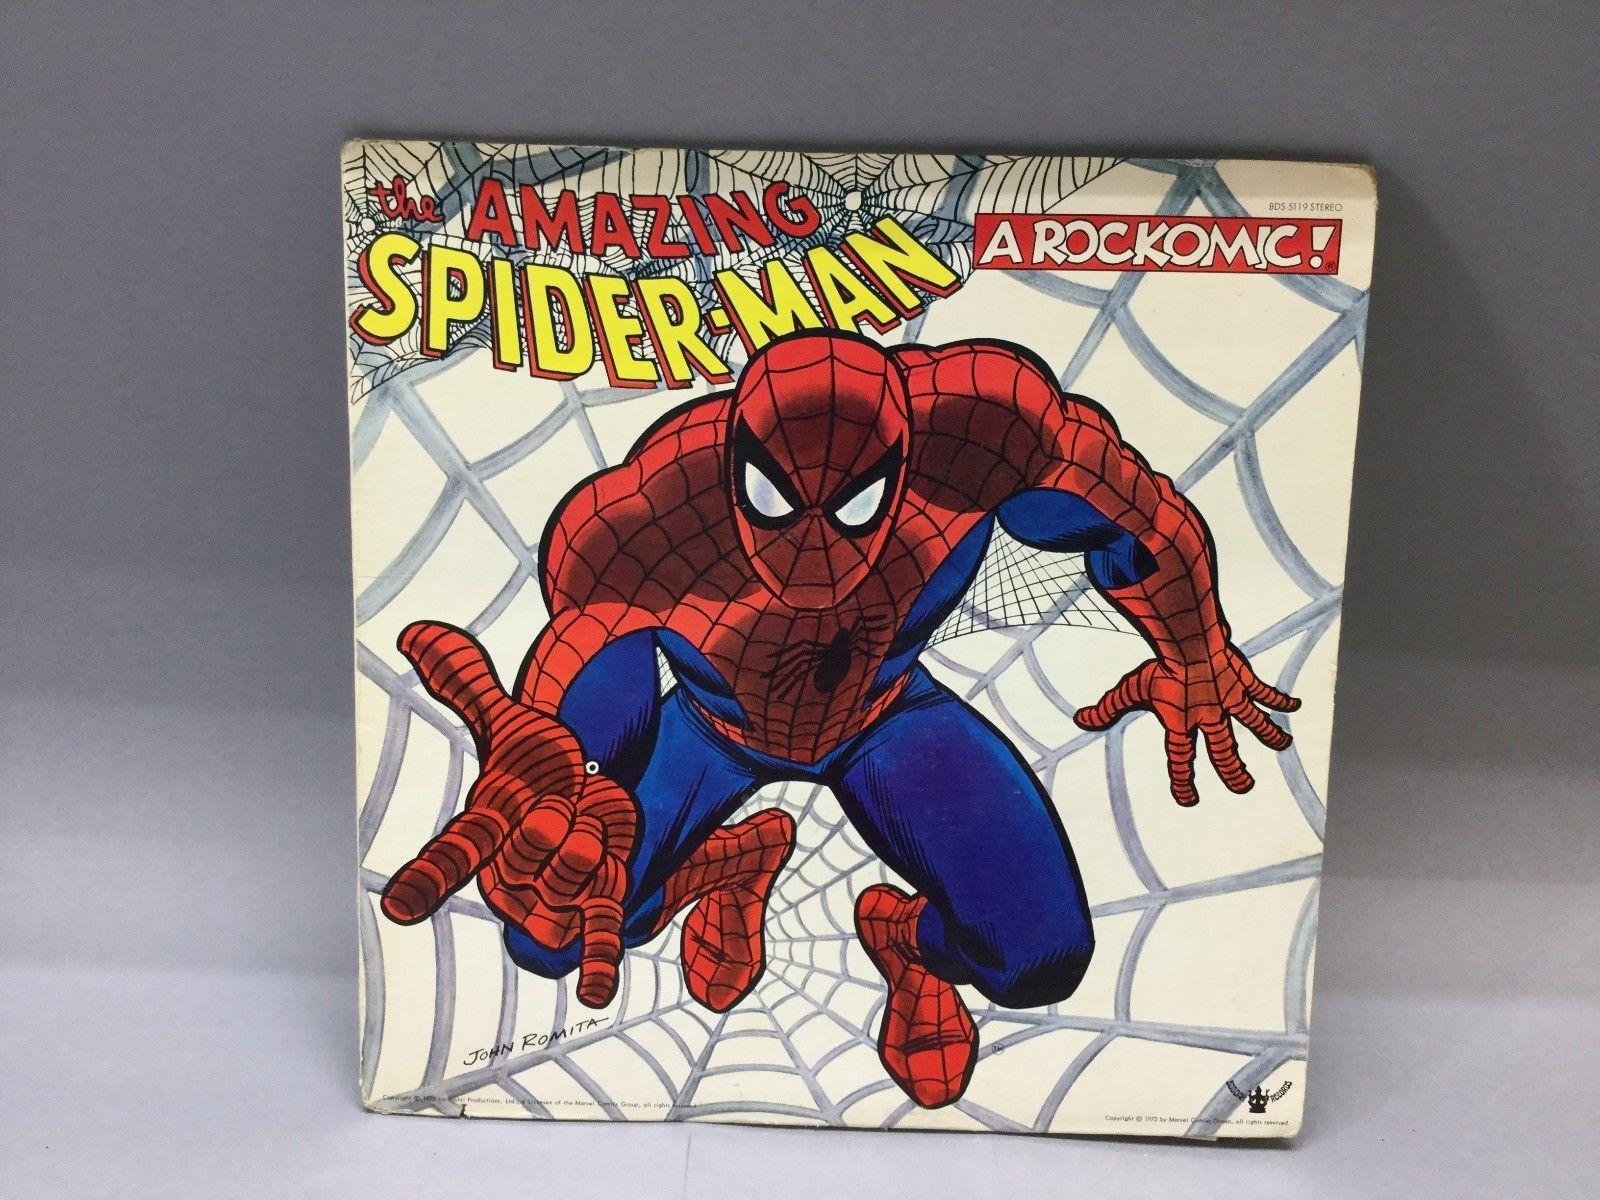 1972 Buddah Record - The Amazing Spiderman A Rockomic